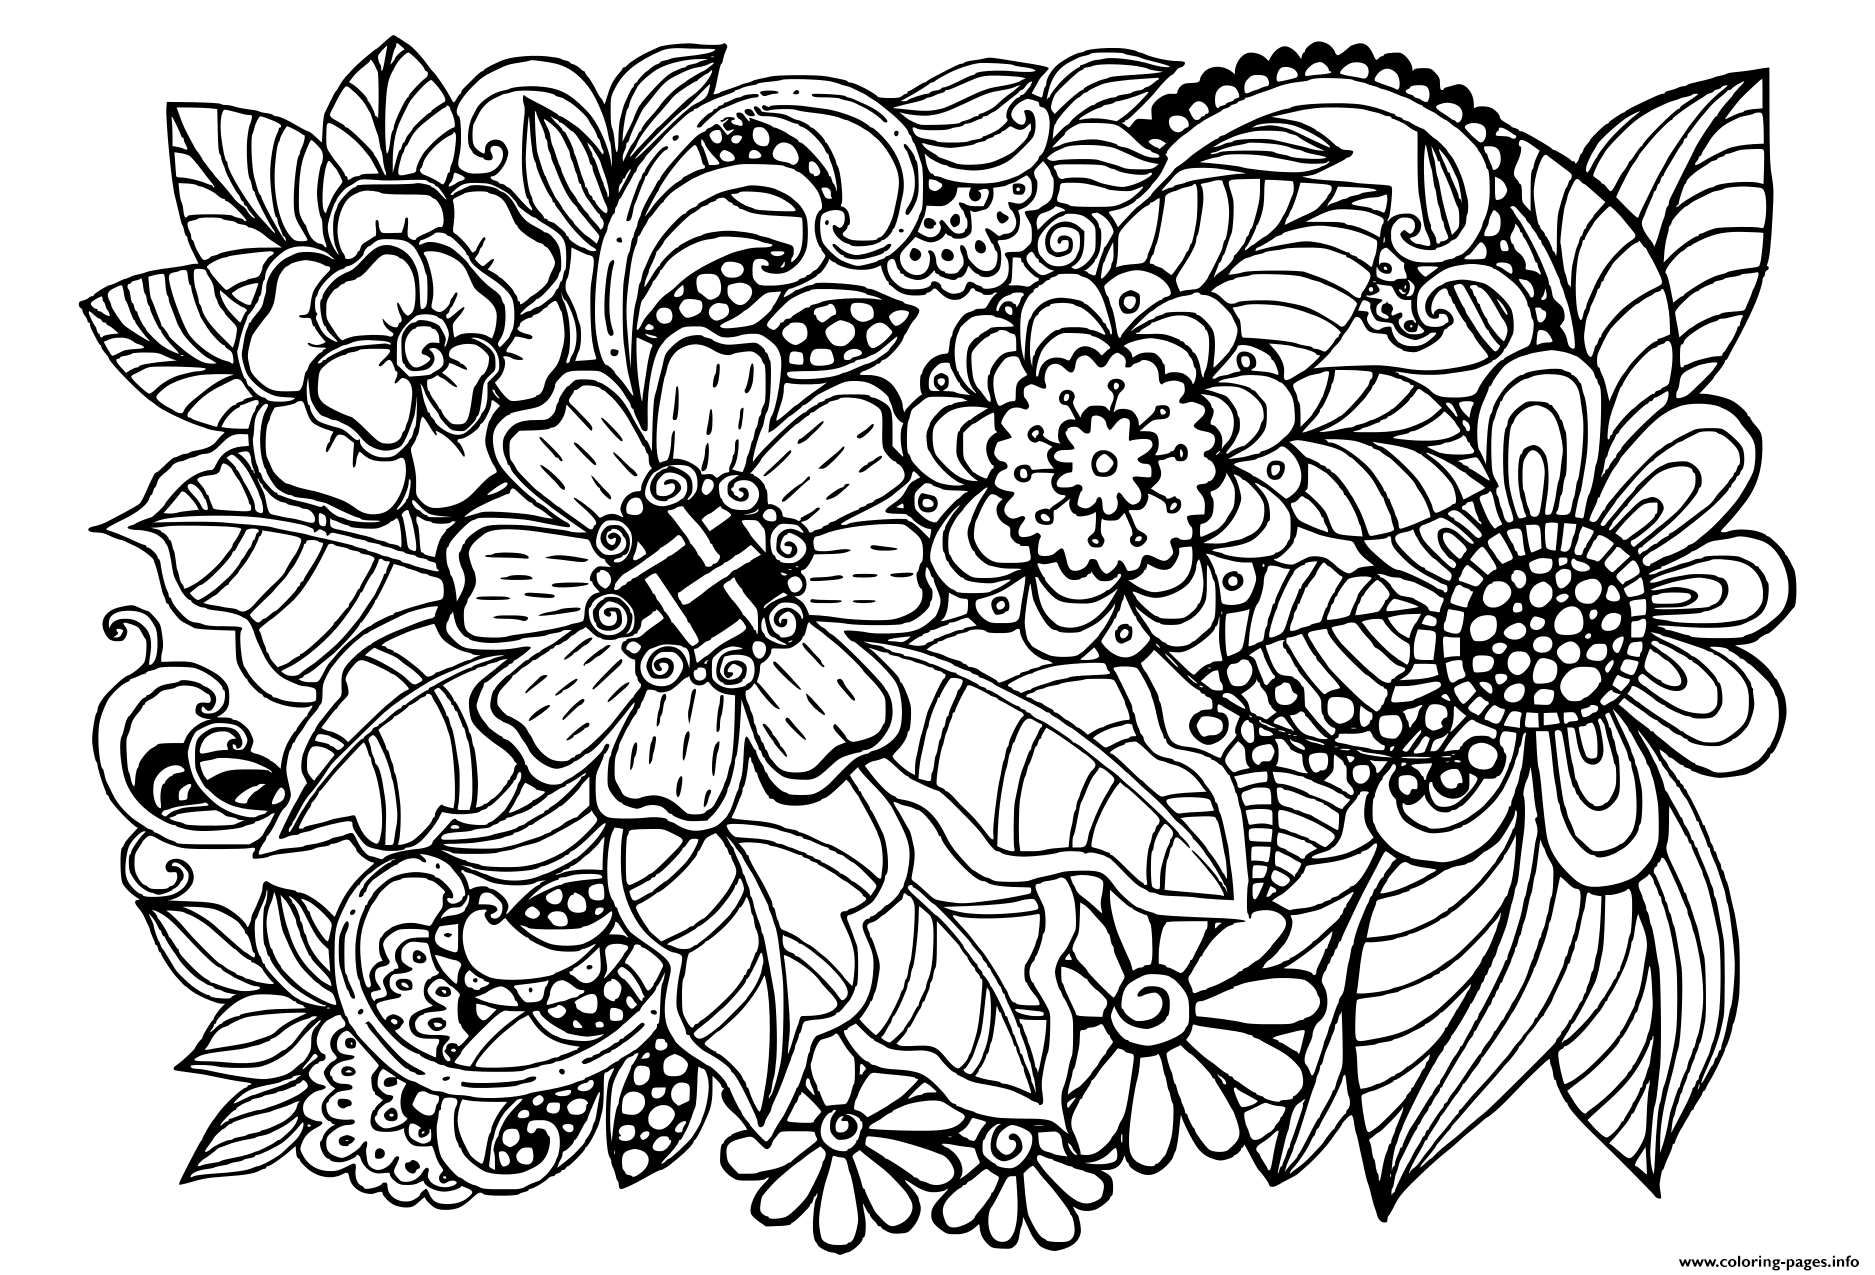 pattern color pages floral coloring pages for adults best coloring pages for color pattern pages